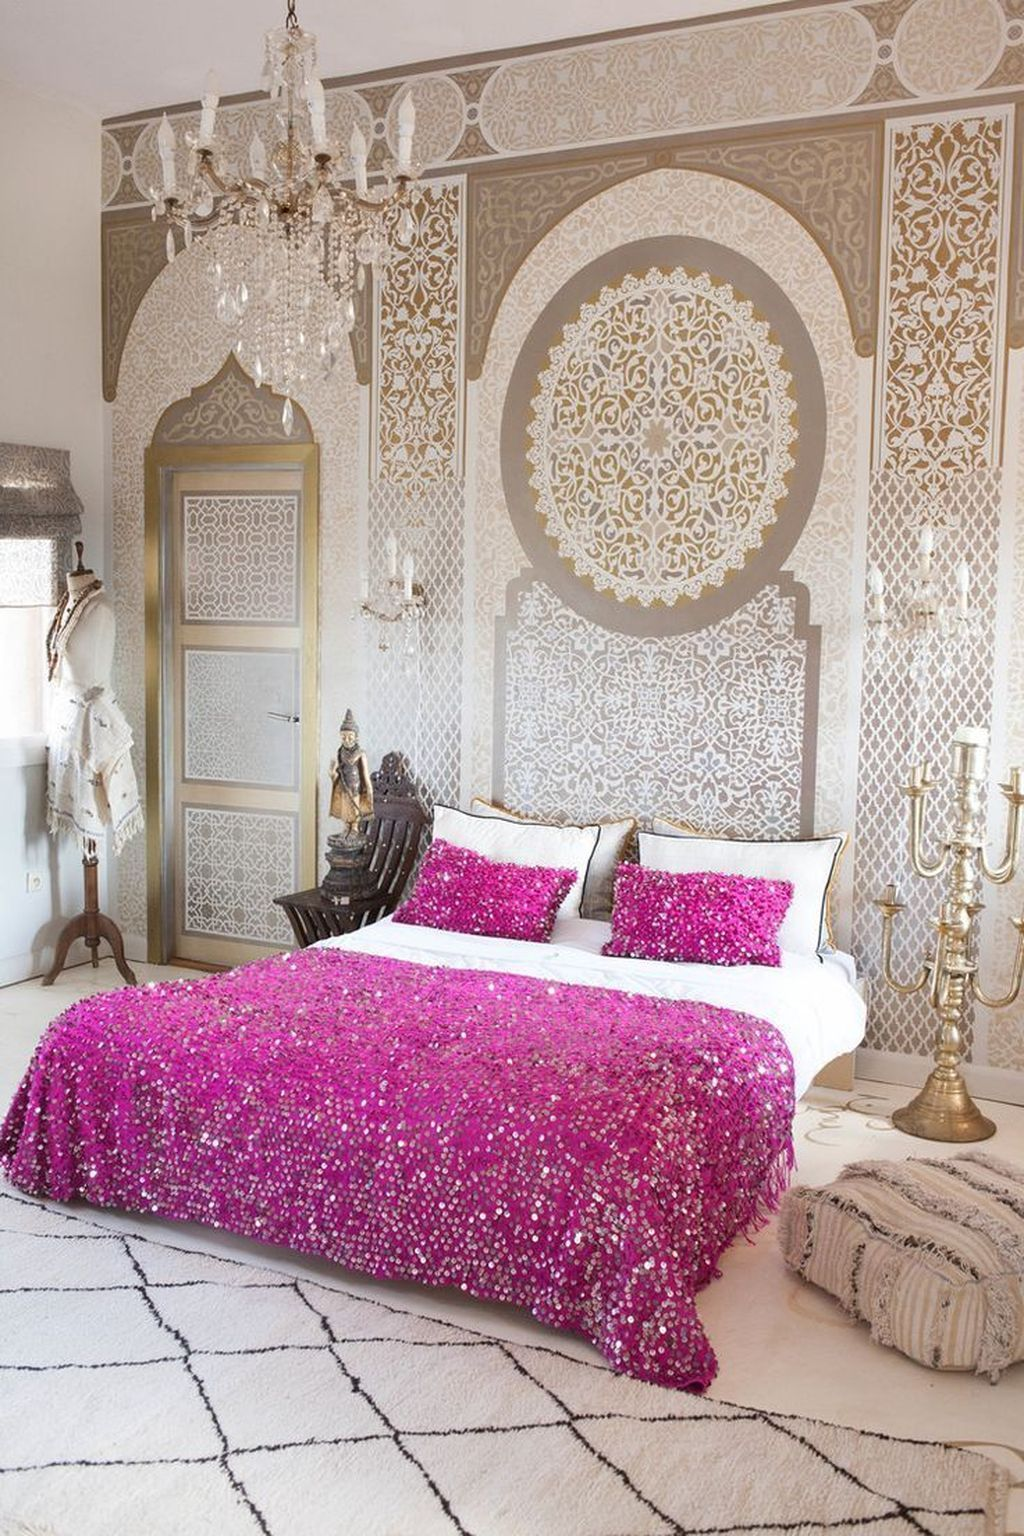 30 Fabulous Moroccan Bedroom Decor Ideas In 2020 Colorful